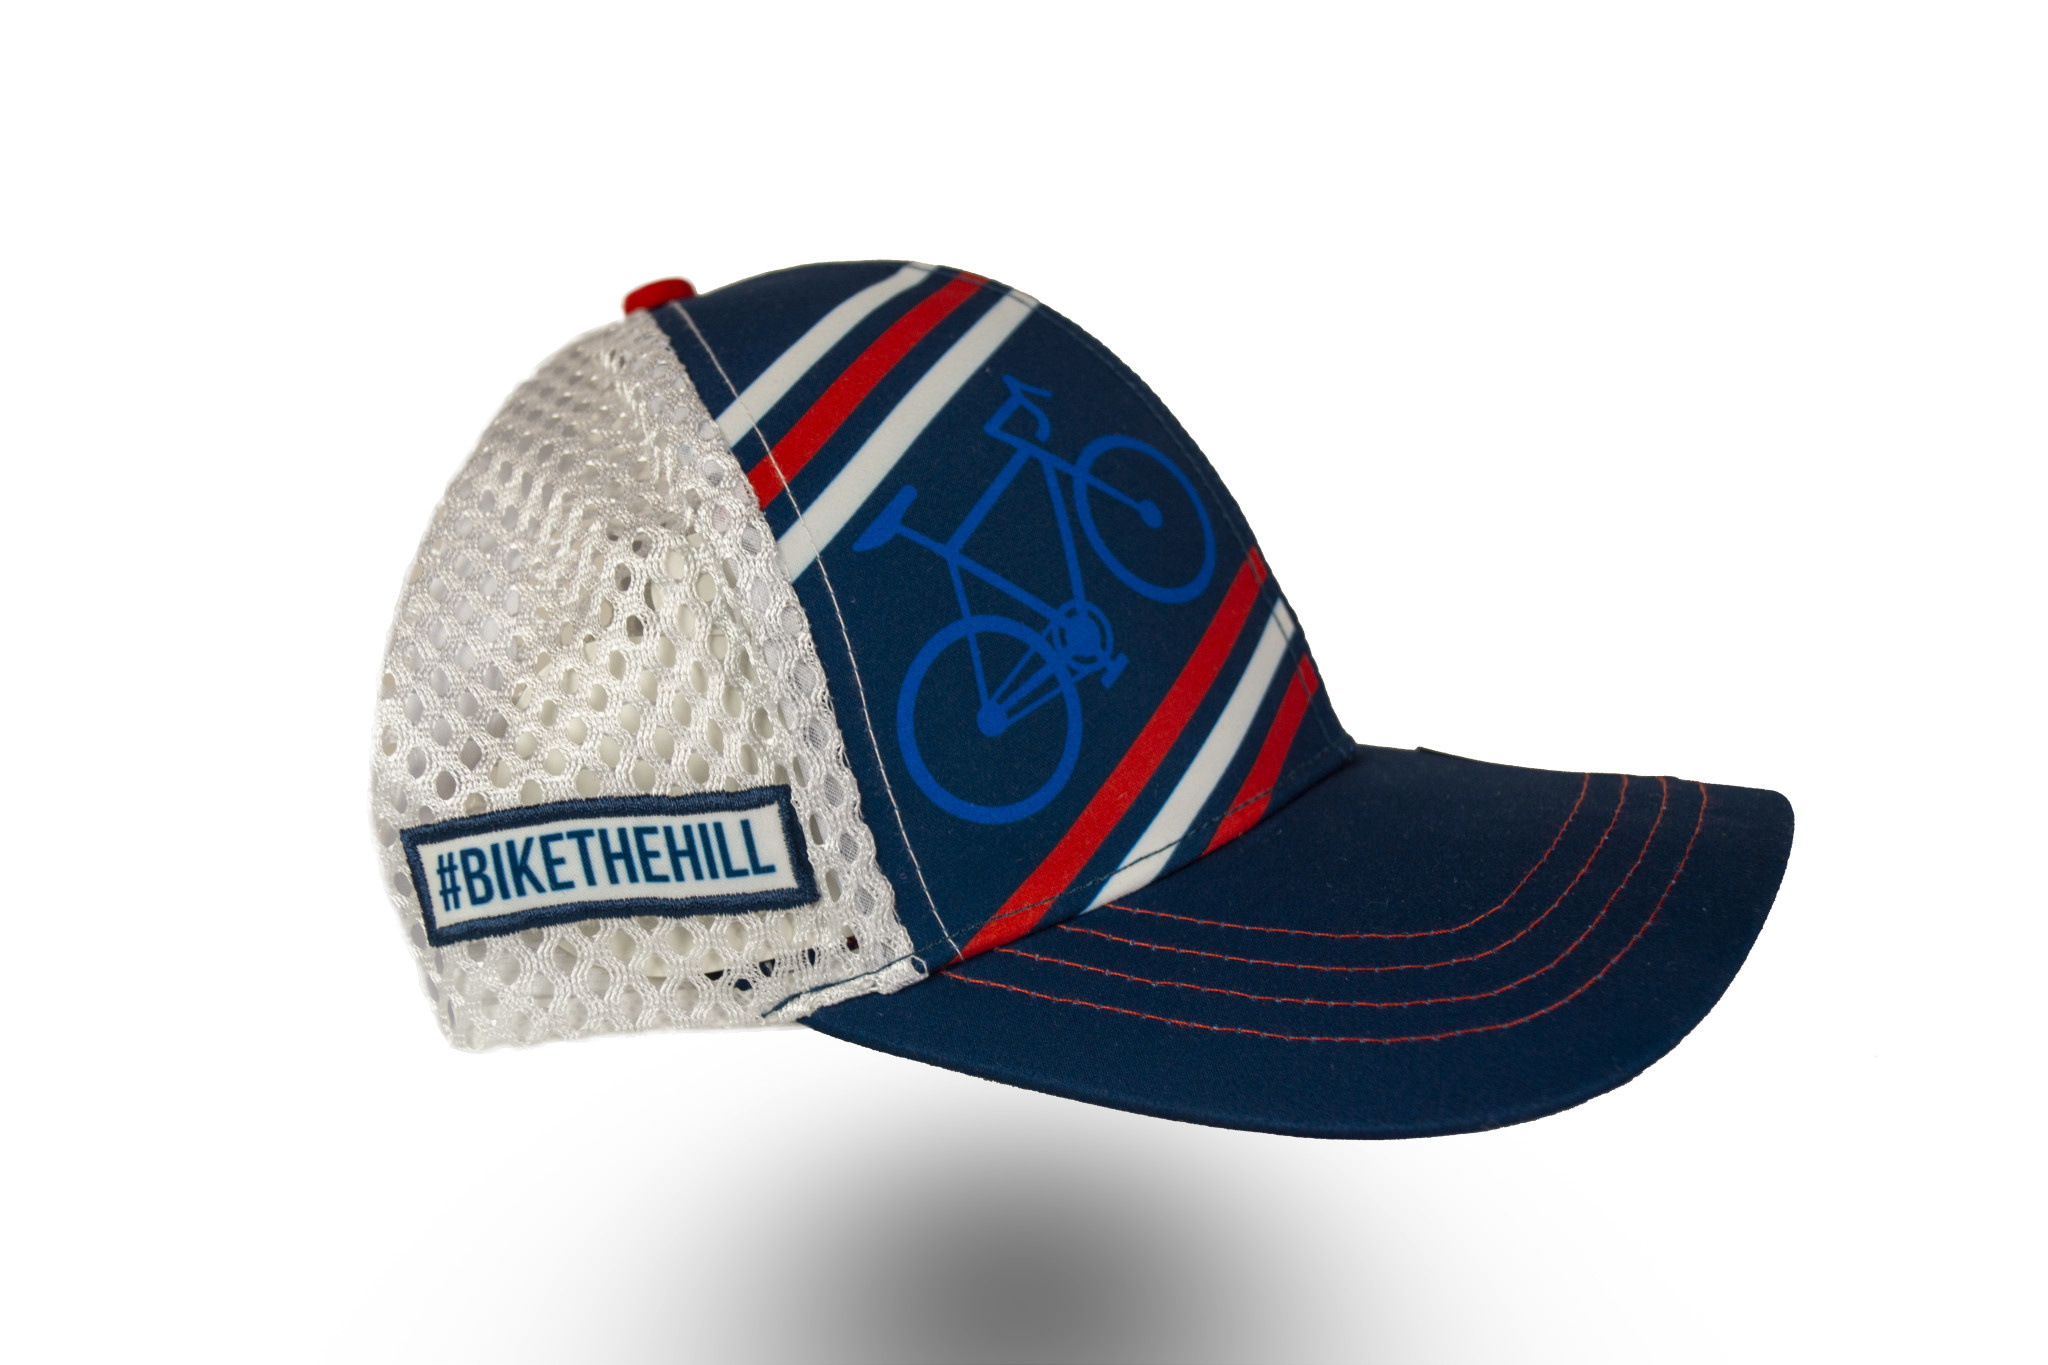 HOW TECHNICAL TRUCKER HAT